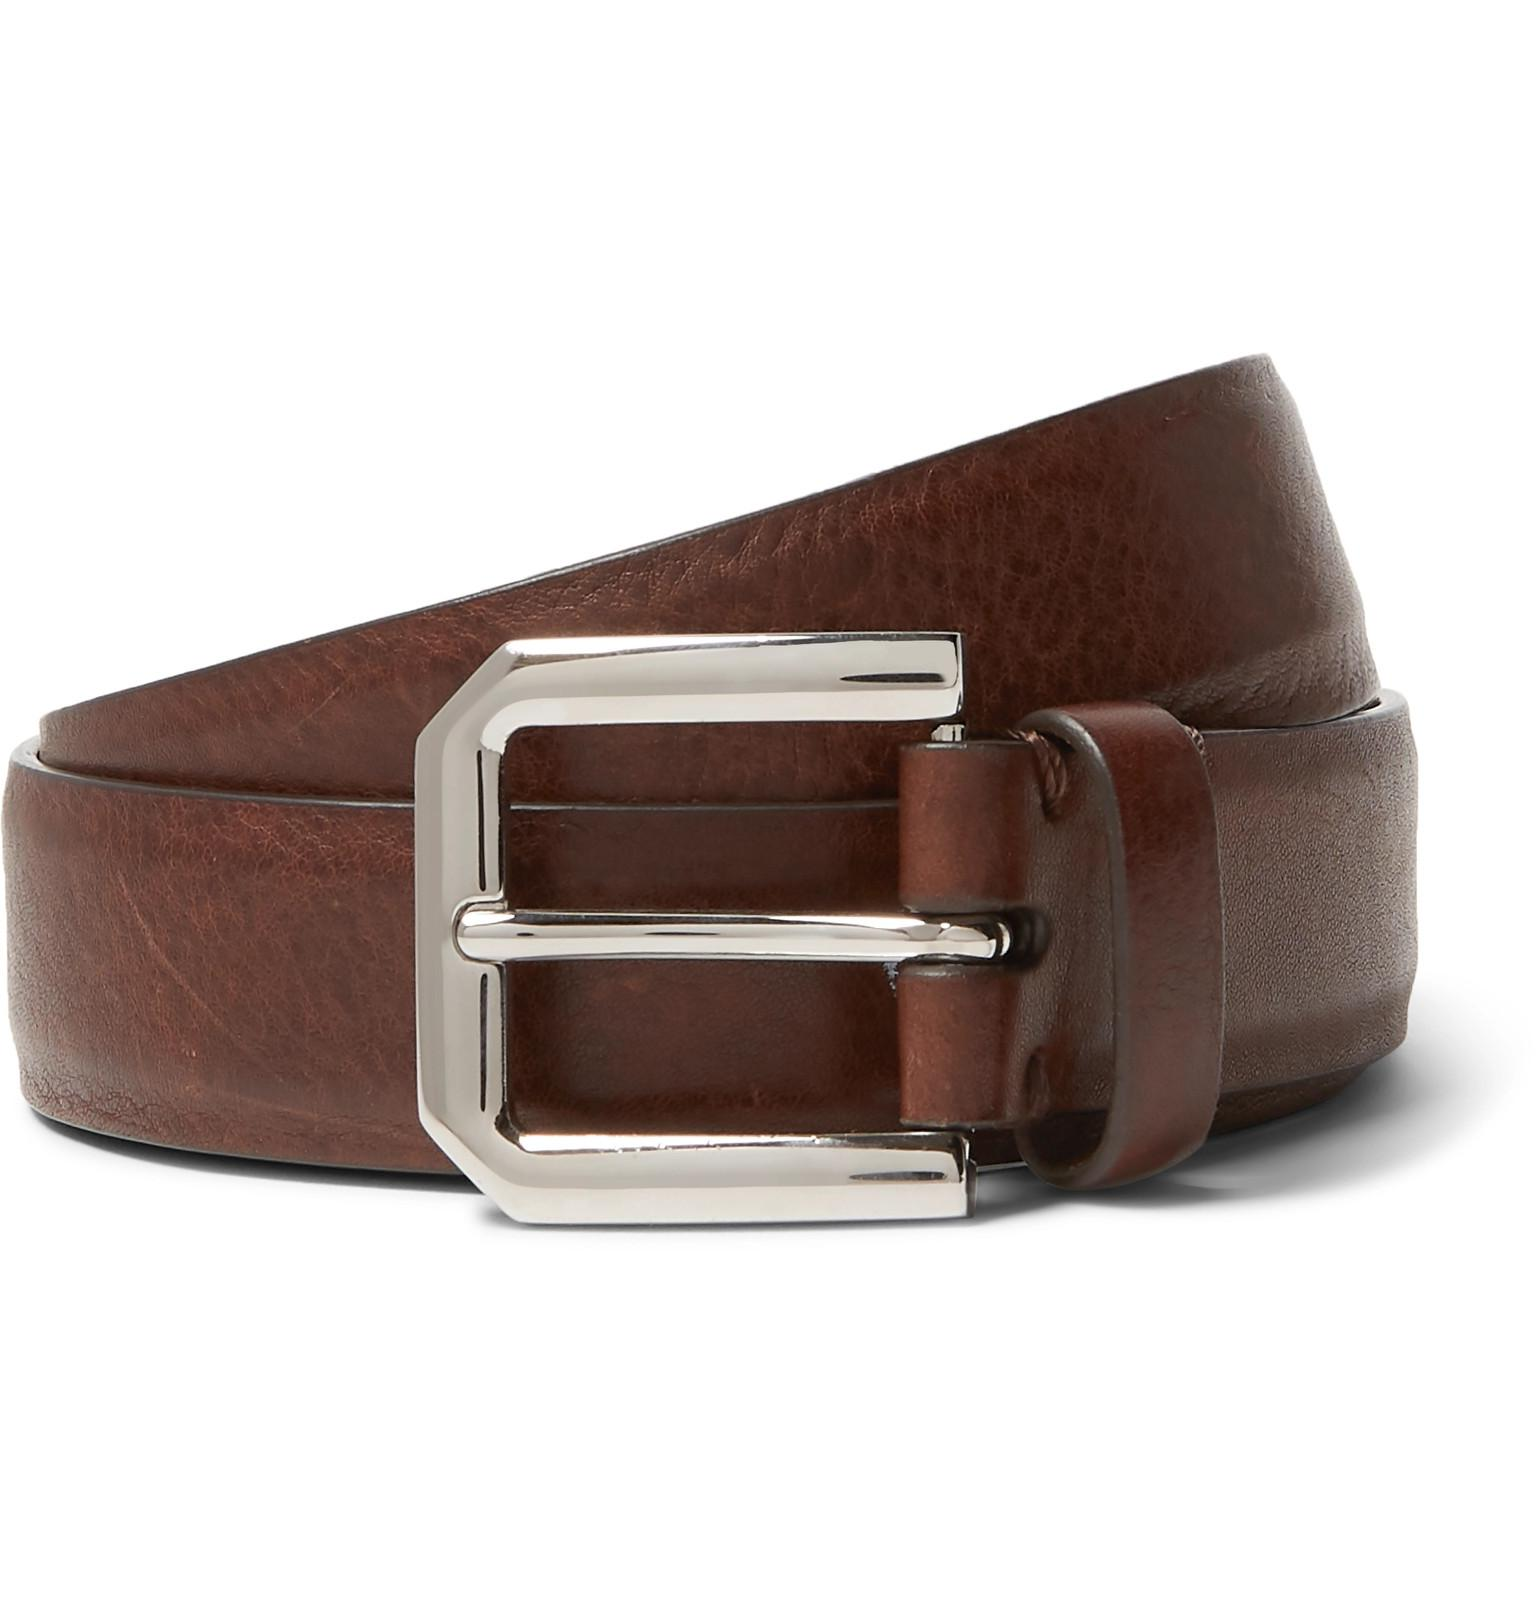 5917fed2b33 Brunello Cucinelli 3cm Brown Leather Belt in Brown for Men - Lyst